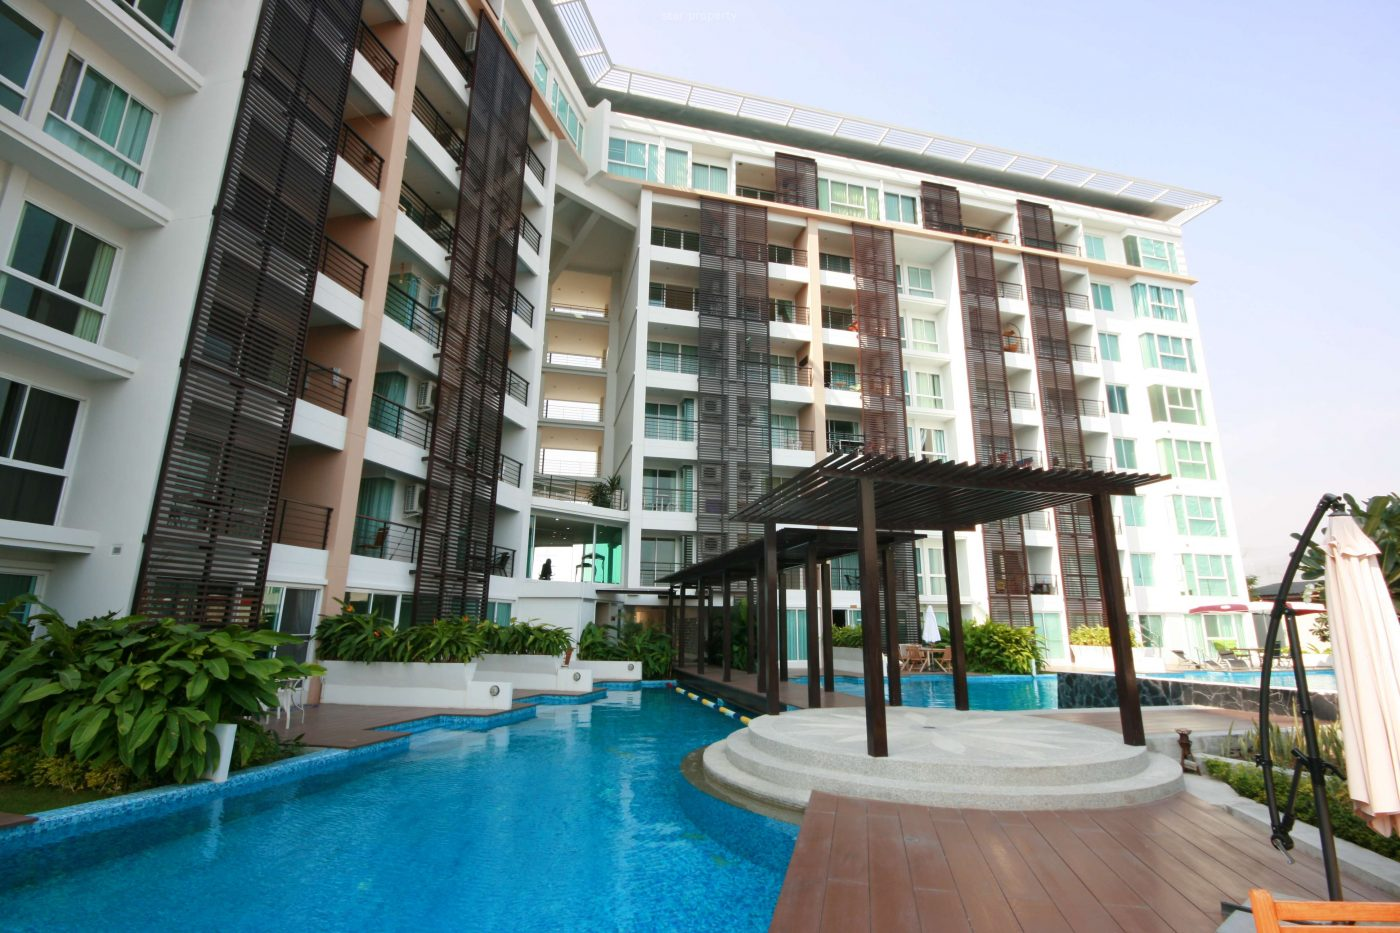 1 Bedroom Condominium at Tira Tiraa Hua Hin